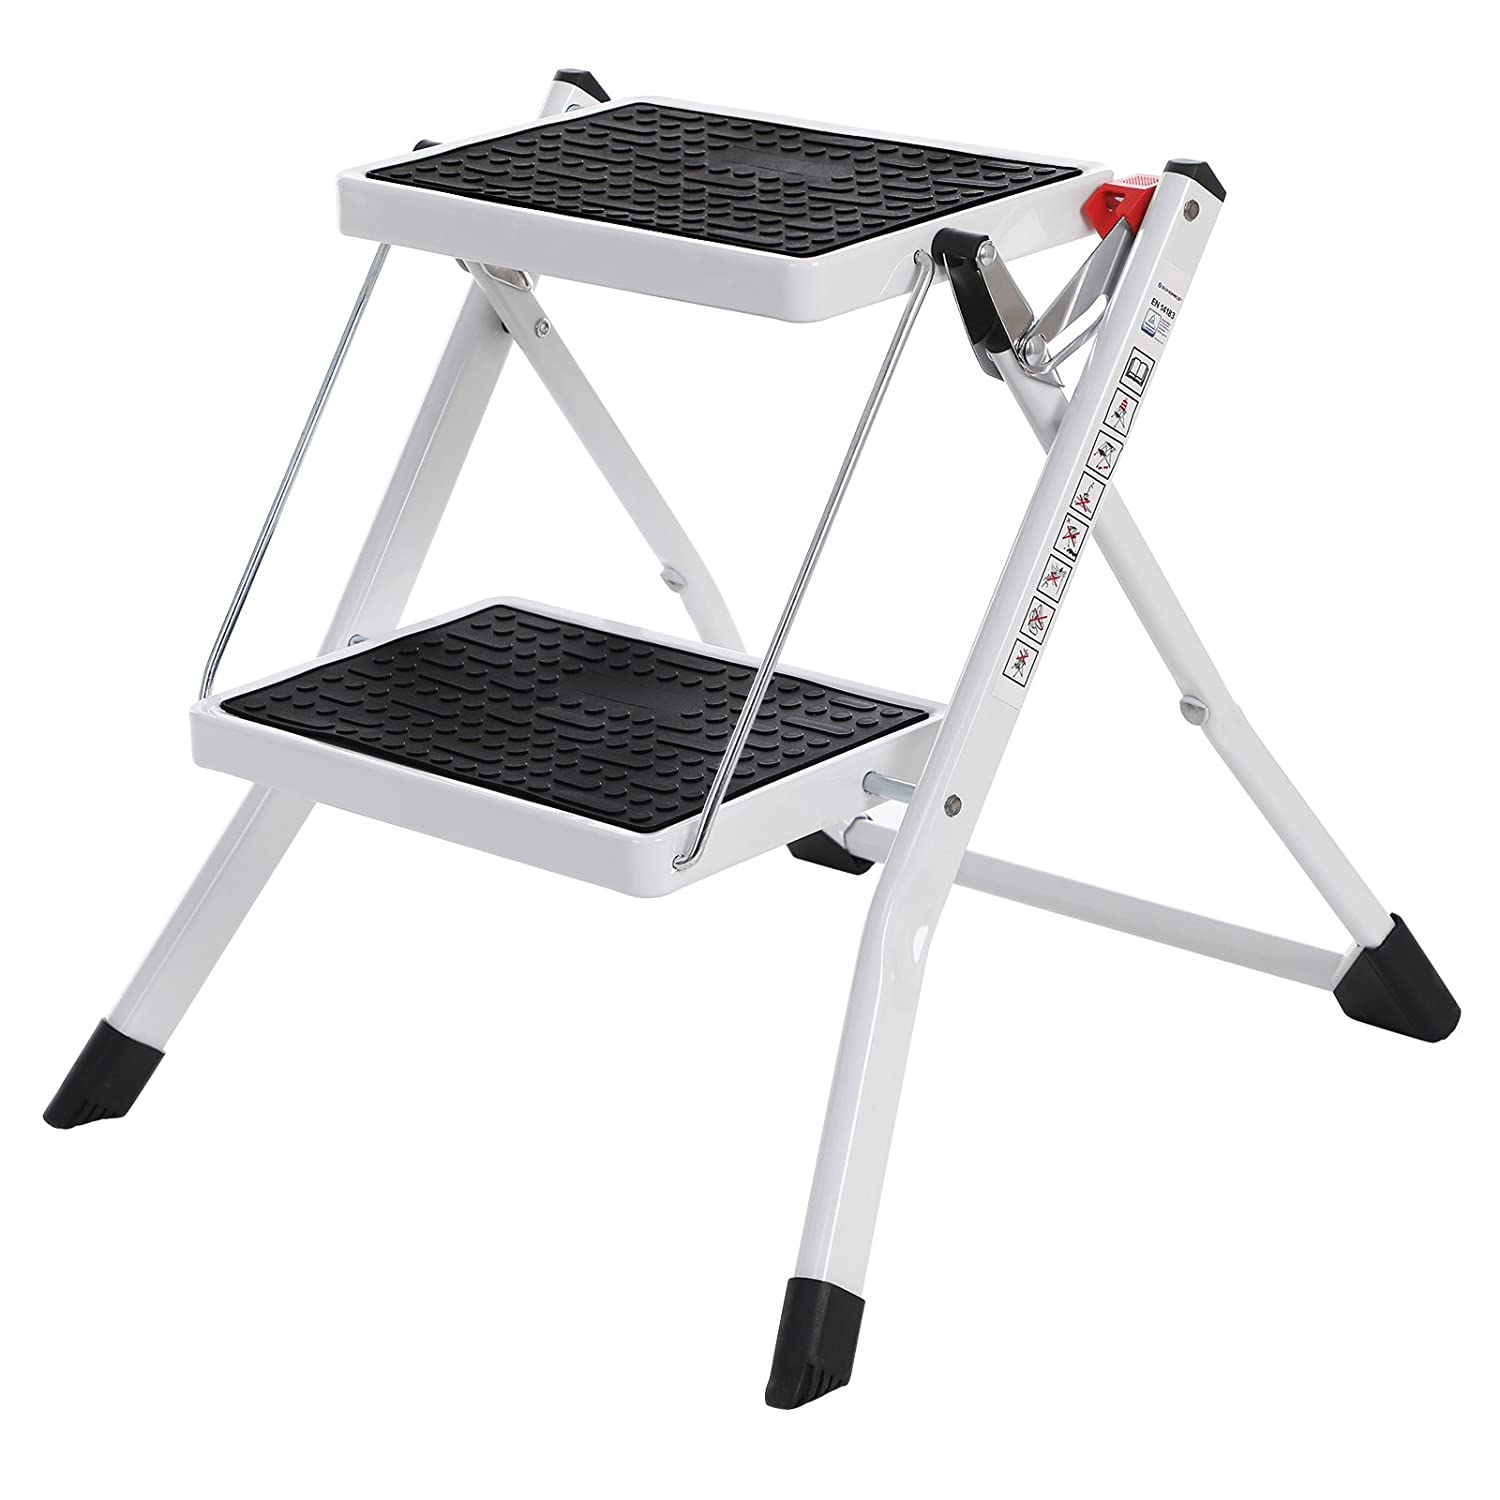 SONGMICS 2 Step Ladder, Heavy Duty Steel, Folding, Portable with Anti-Slip Mat Max. Load Capacity up to 150 kg Tested and Certified by TÜ V Rheinland GSL02WT